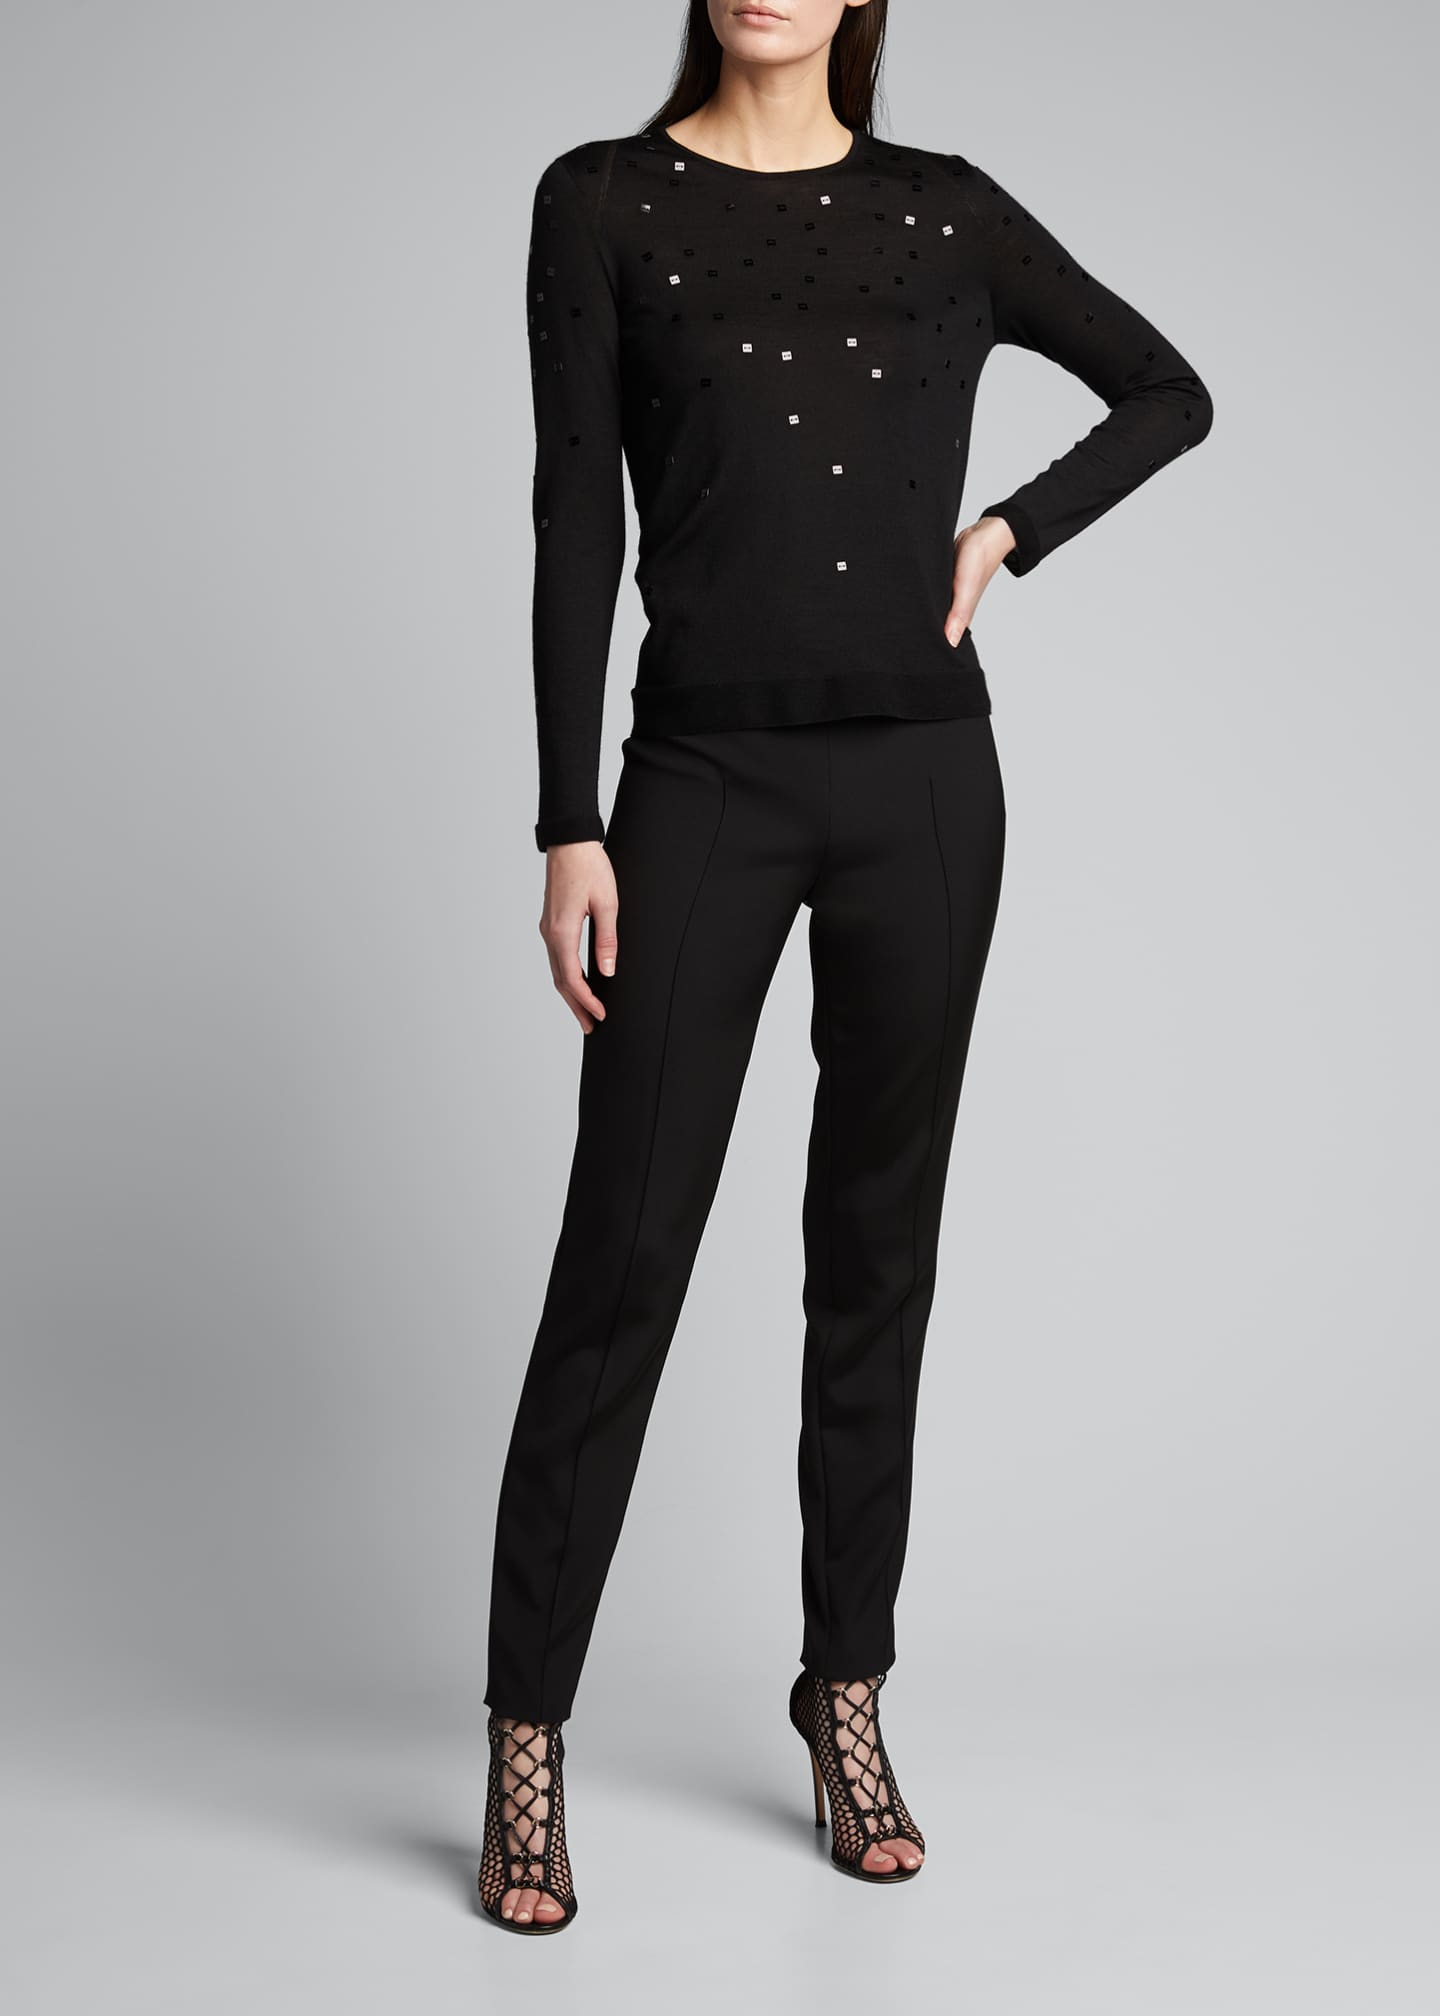 Image 1 of 5: Cashmere-Silk Sequined Sweater